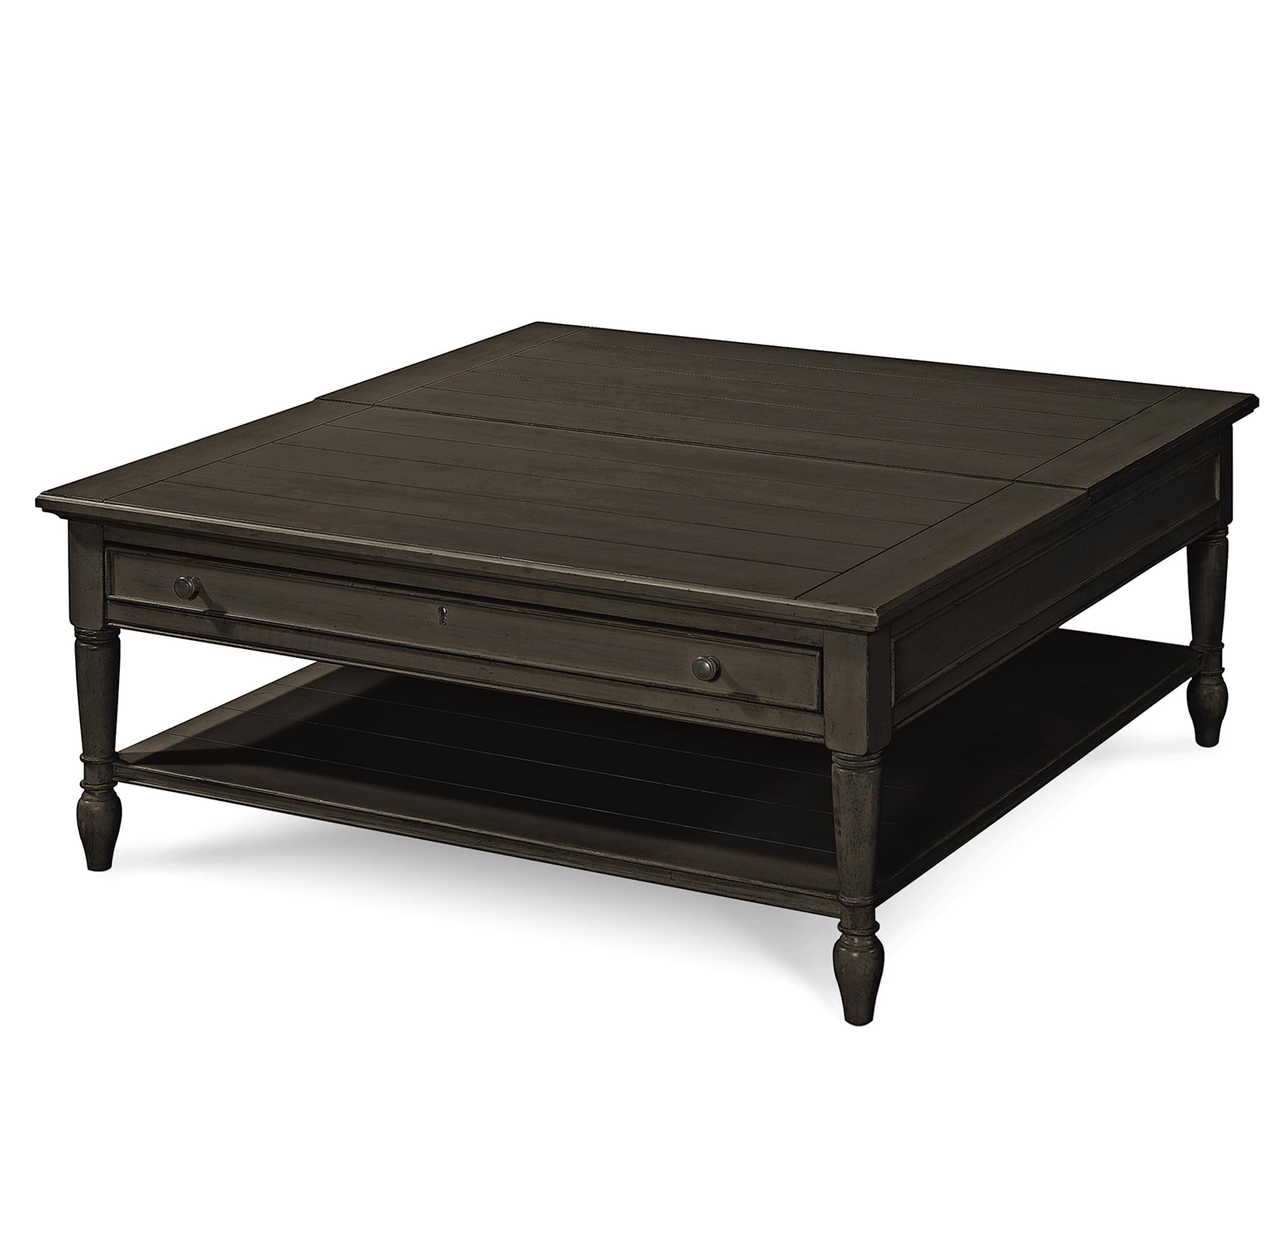 Country chic black wood square coffee table with lift top zin home Black wooden coffee tables